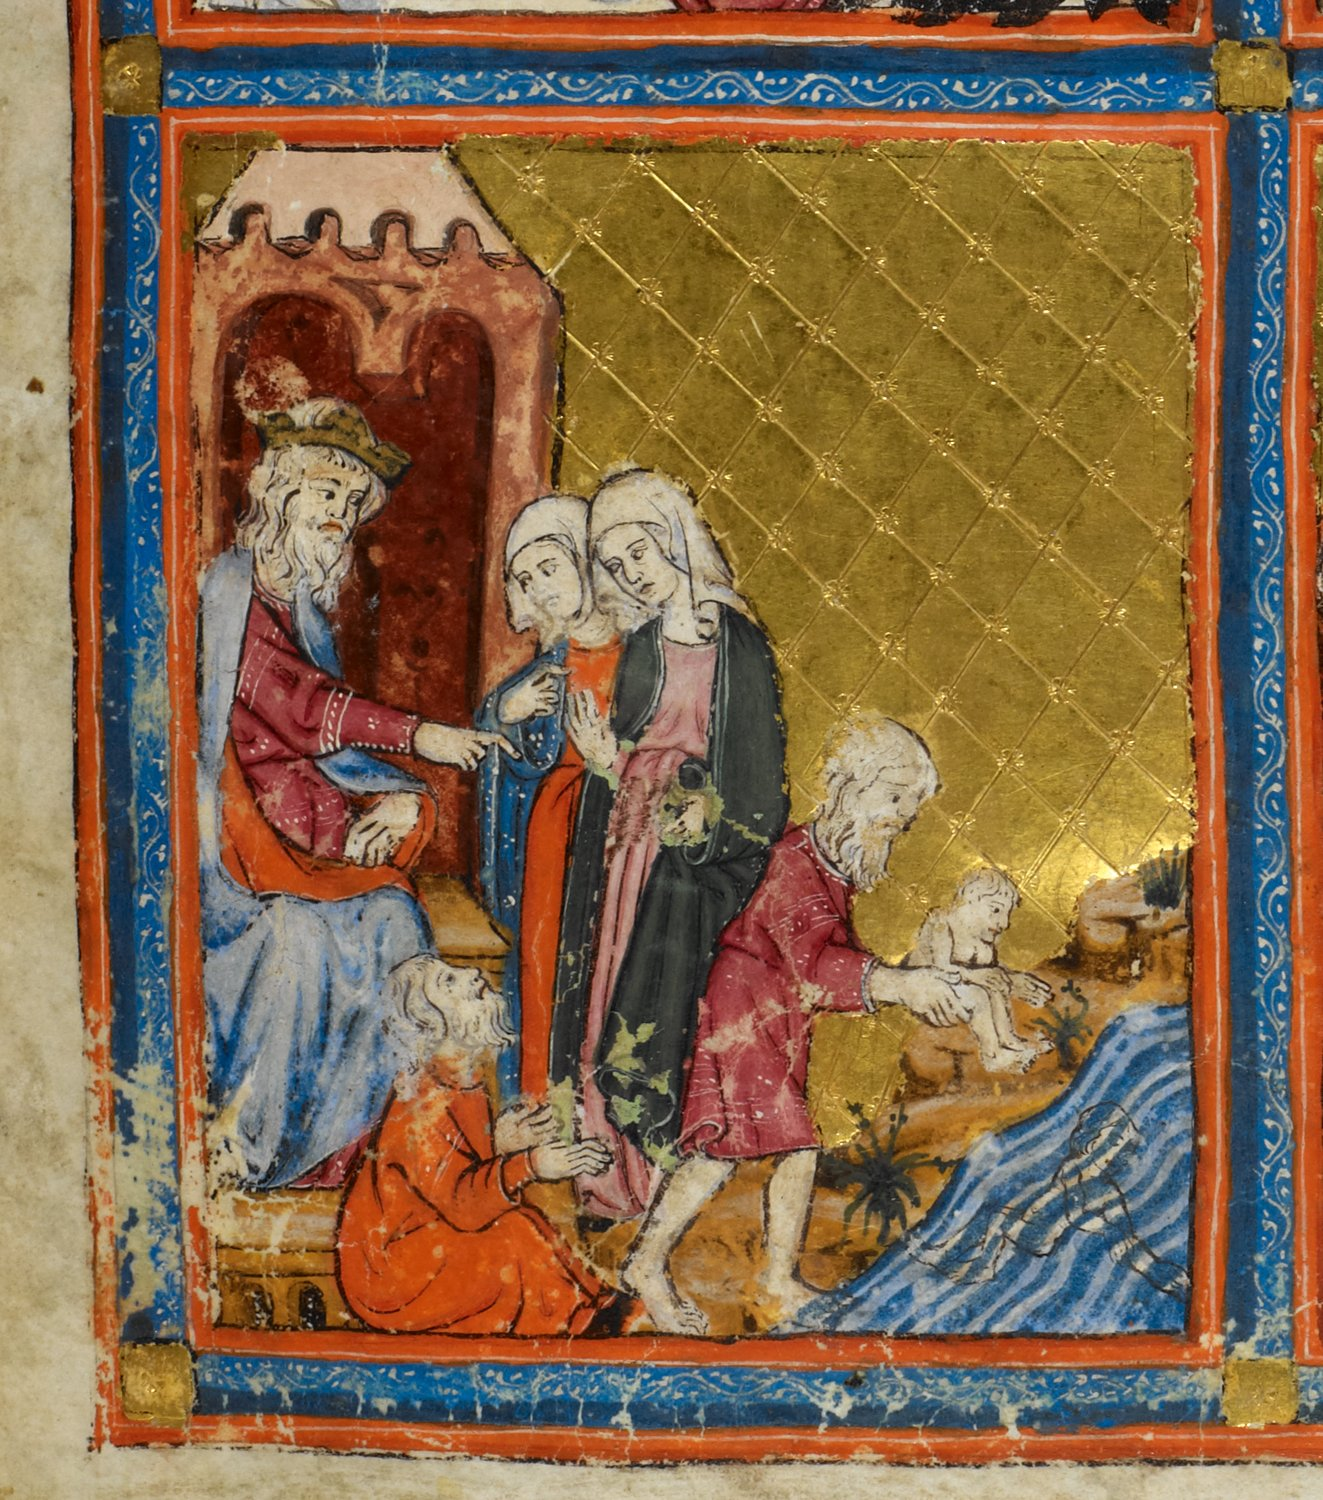 Golden Haggadah Pharaoh and the Midwives